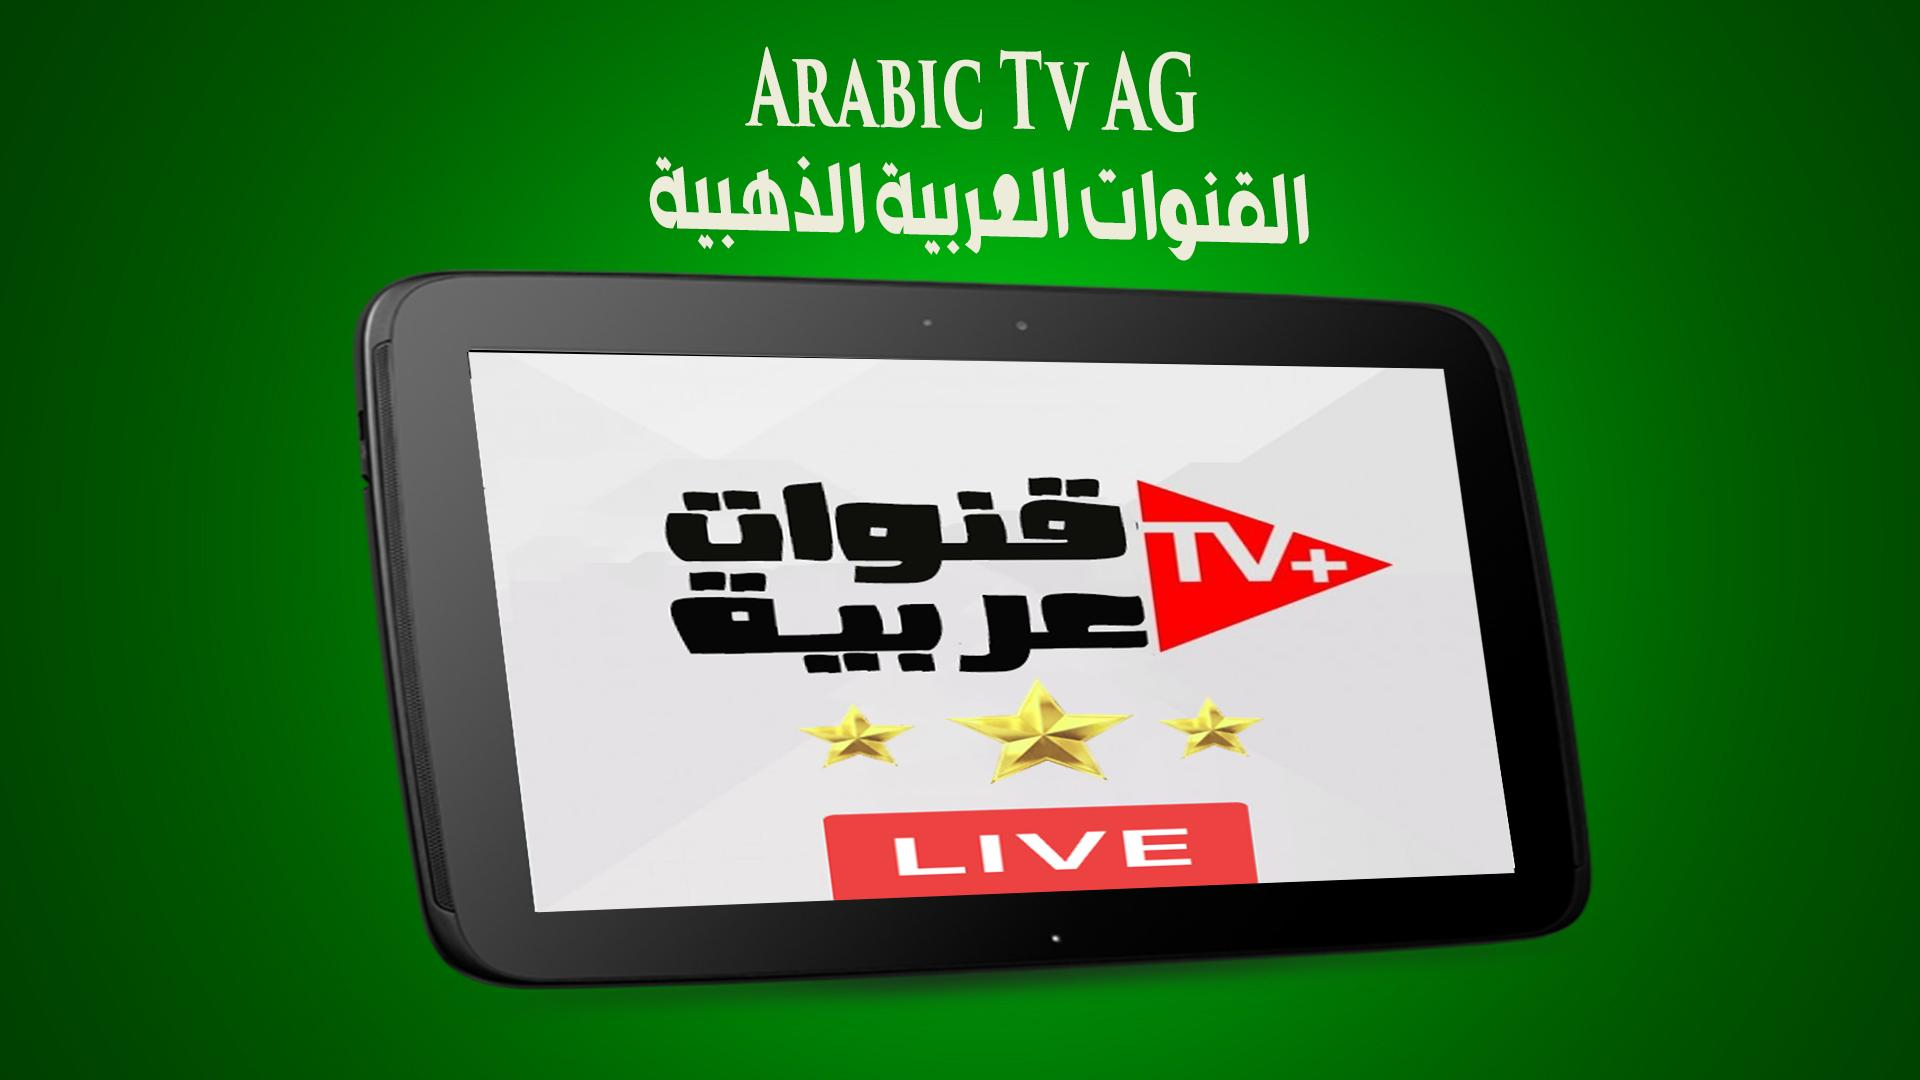 Arabic Tv AG Pro for Android - APK Download